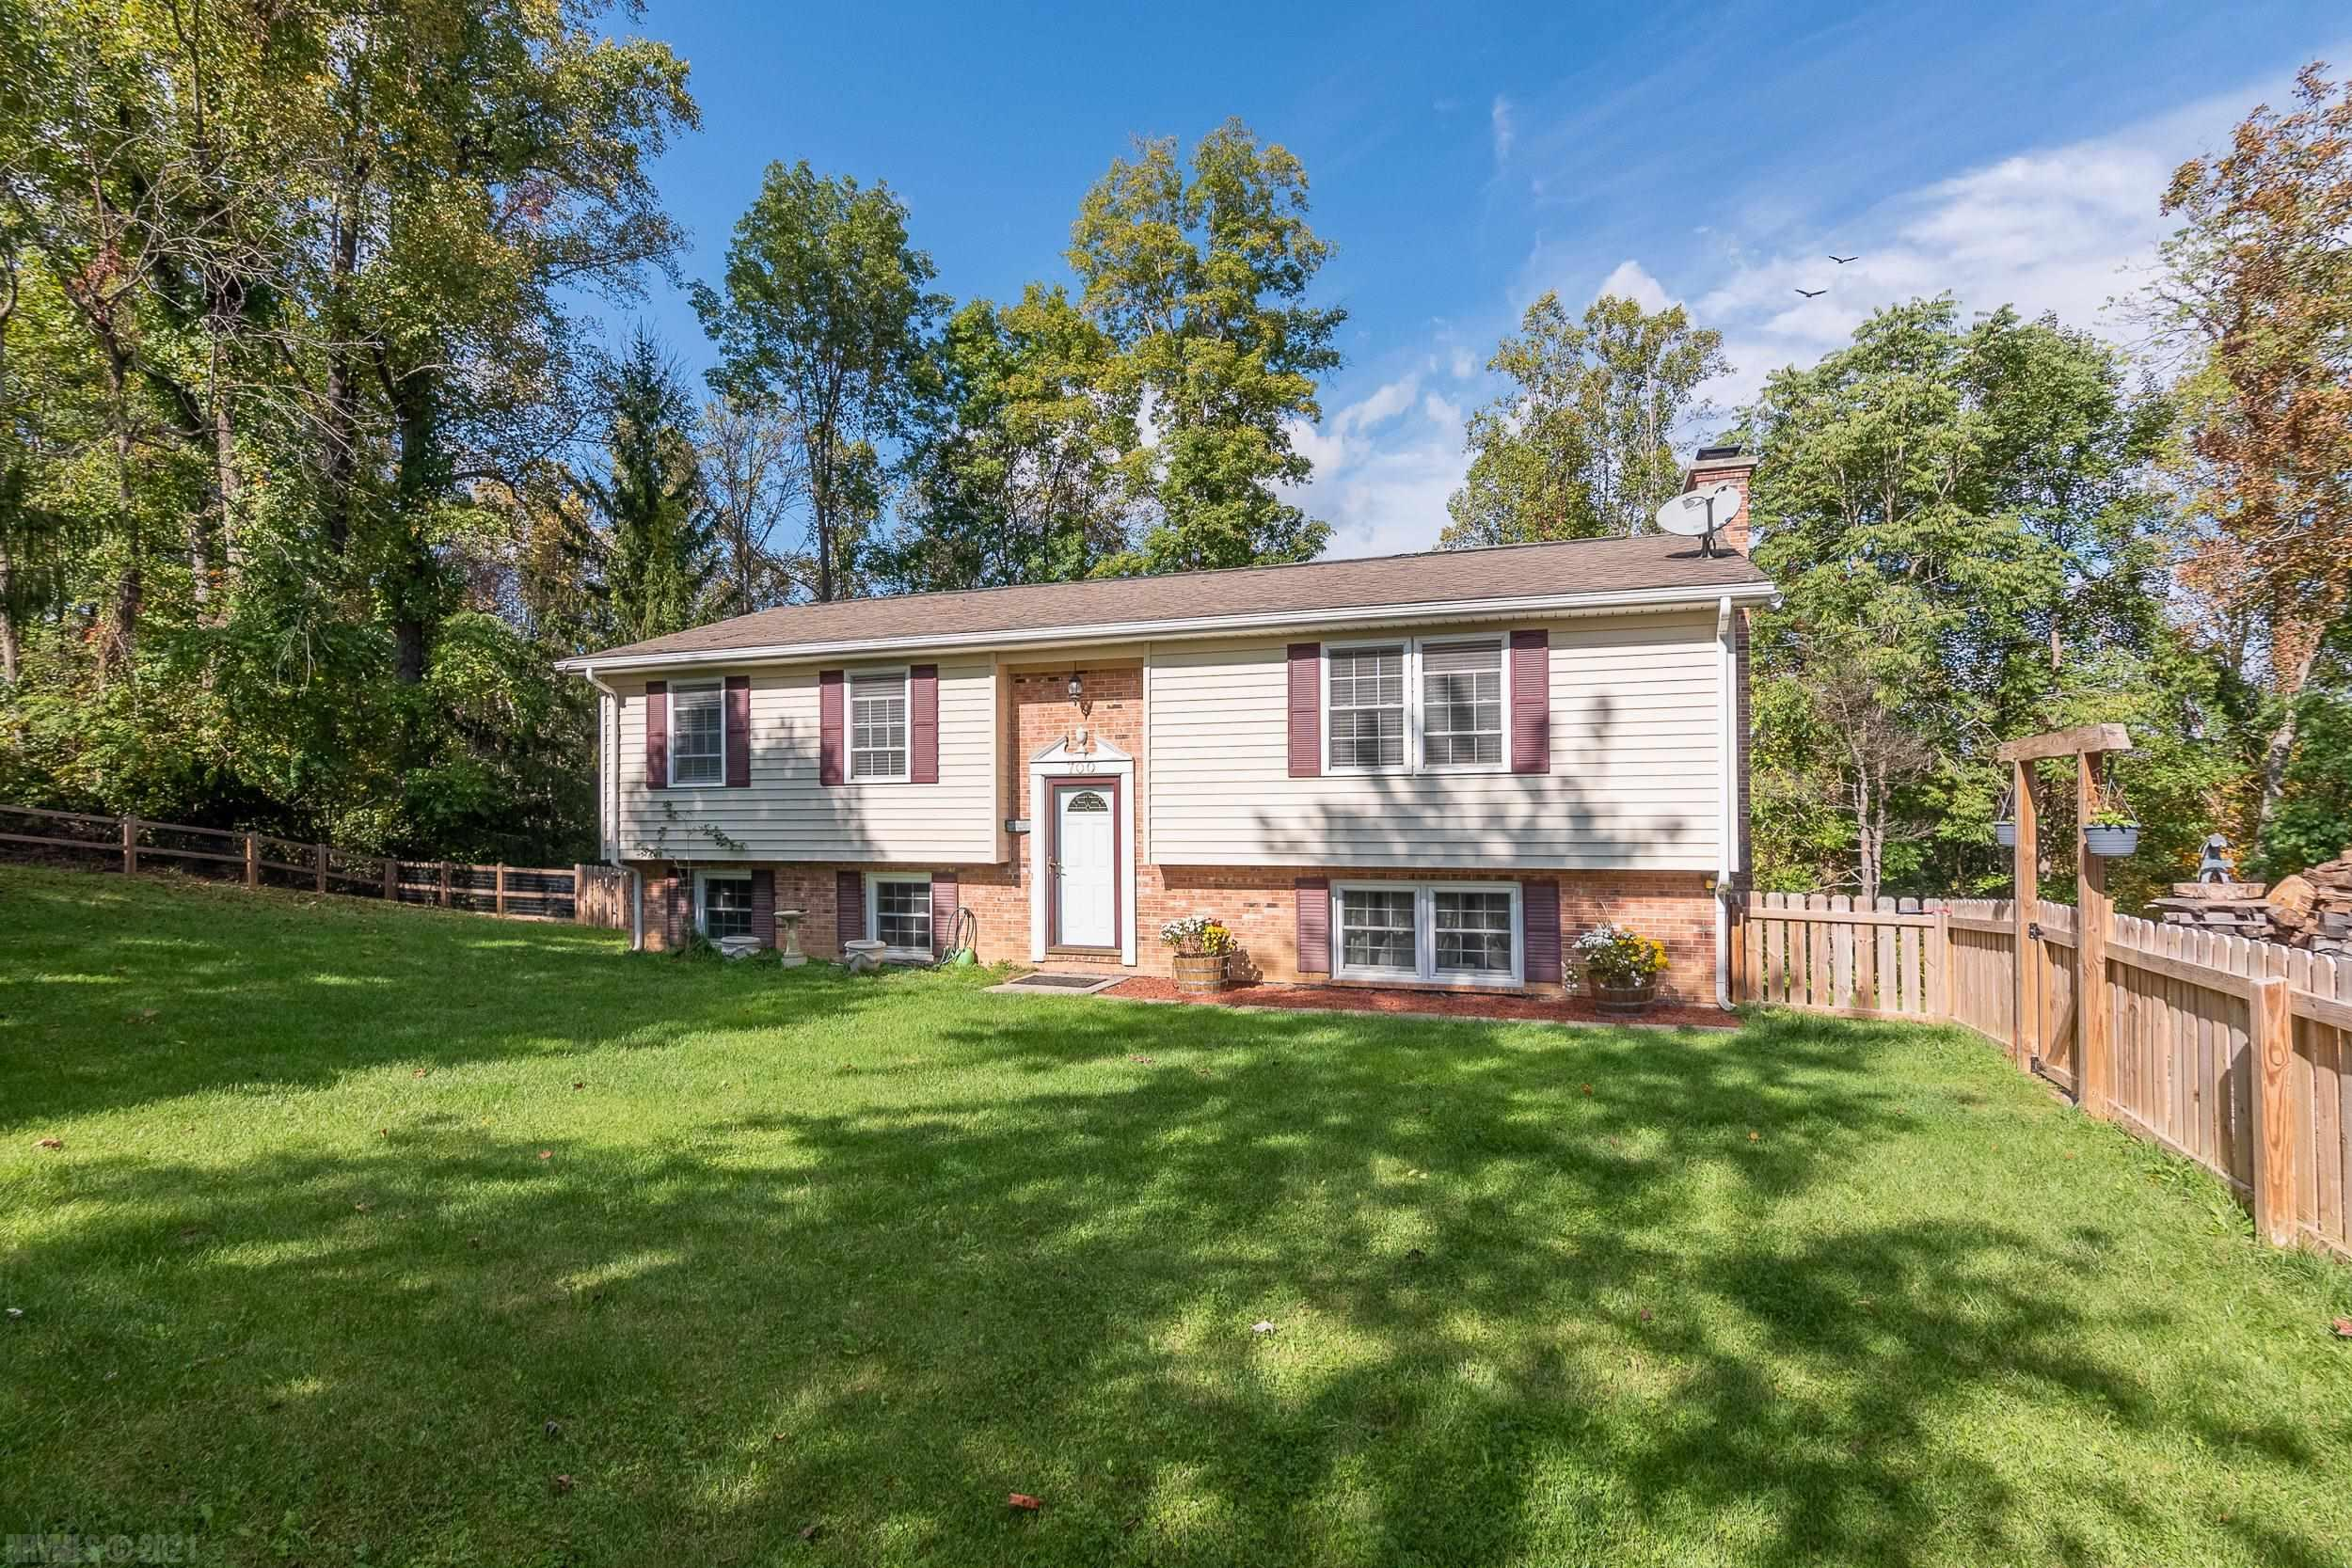 Check out this updated split foyer in the woods. This home has 3 bed and 2 bath, 2200 sq. ft. and sits on 5.4 acres, with a small stream on the back of the property. Beautiful kitchen with stainless appliances, nice deck overlooking the yard. Sit out back and watch the deer & other wildlife in the woods behind you. Also, great land to hunt on if you wish.  Newly fenced front yard to let your dogs run. Cozy den with wood fireplace to relax in the evenings. Private location but close to everything in the NRV. Newer Appliances, water heater and HVAC. Come take a look and fall in love with all this home has to offer.